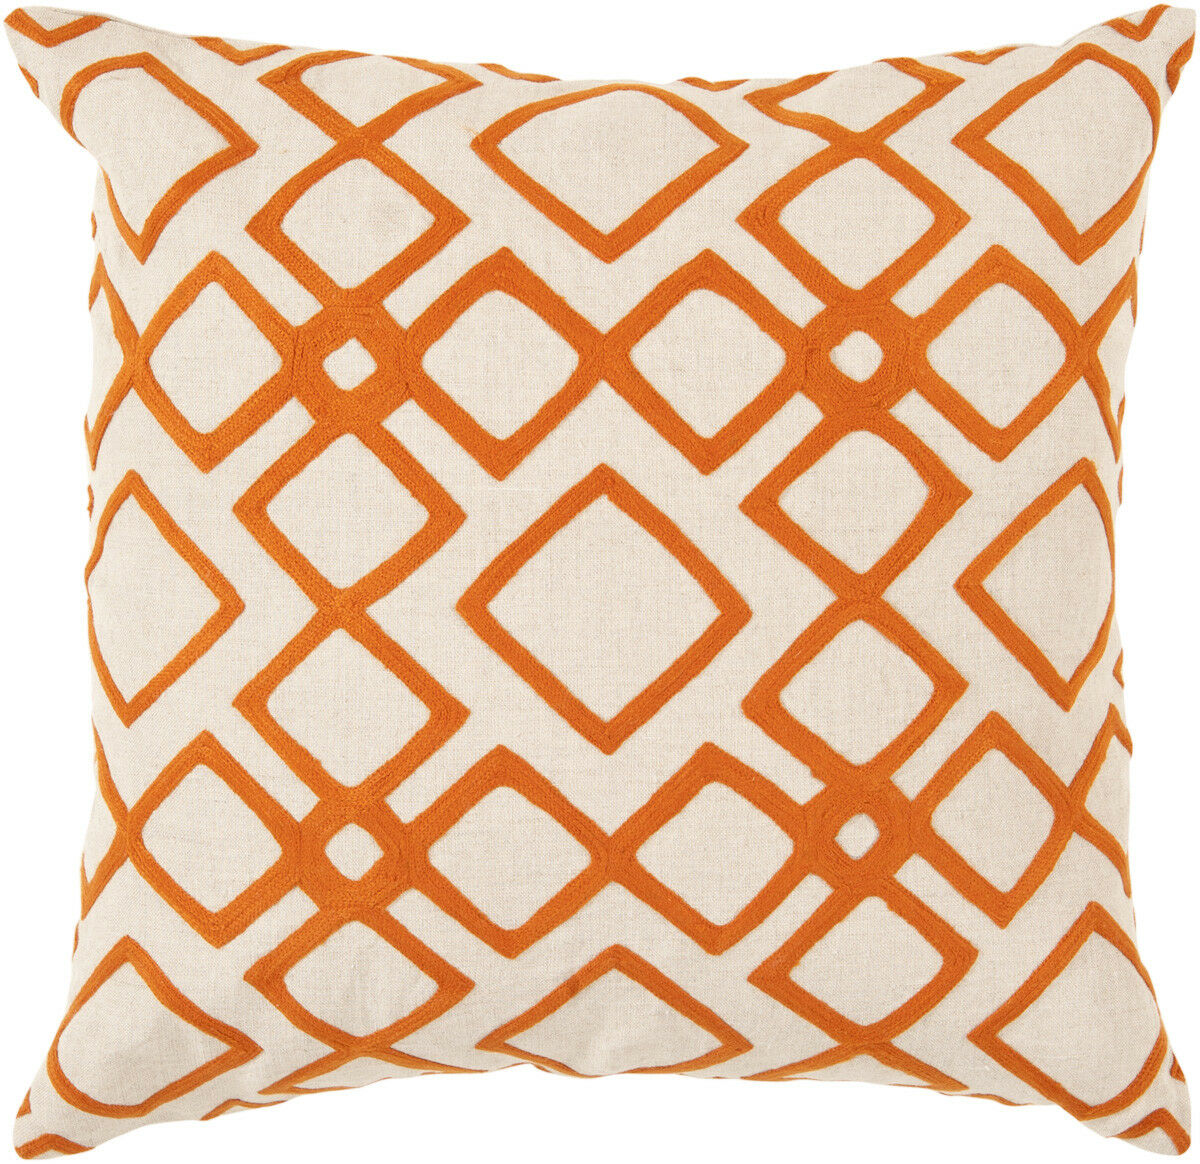 Surya oranges Squares Lattice Trellis Contemporary Area Rug Geometric COM015